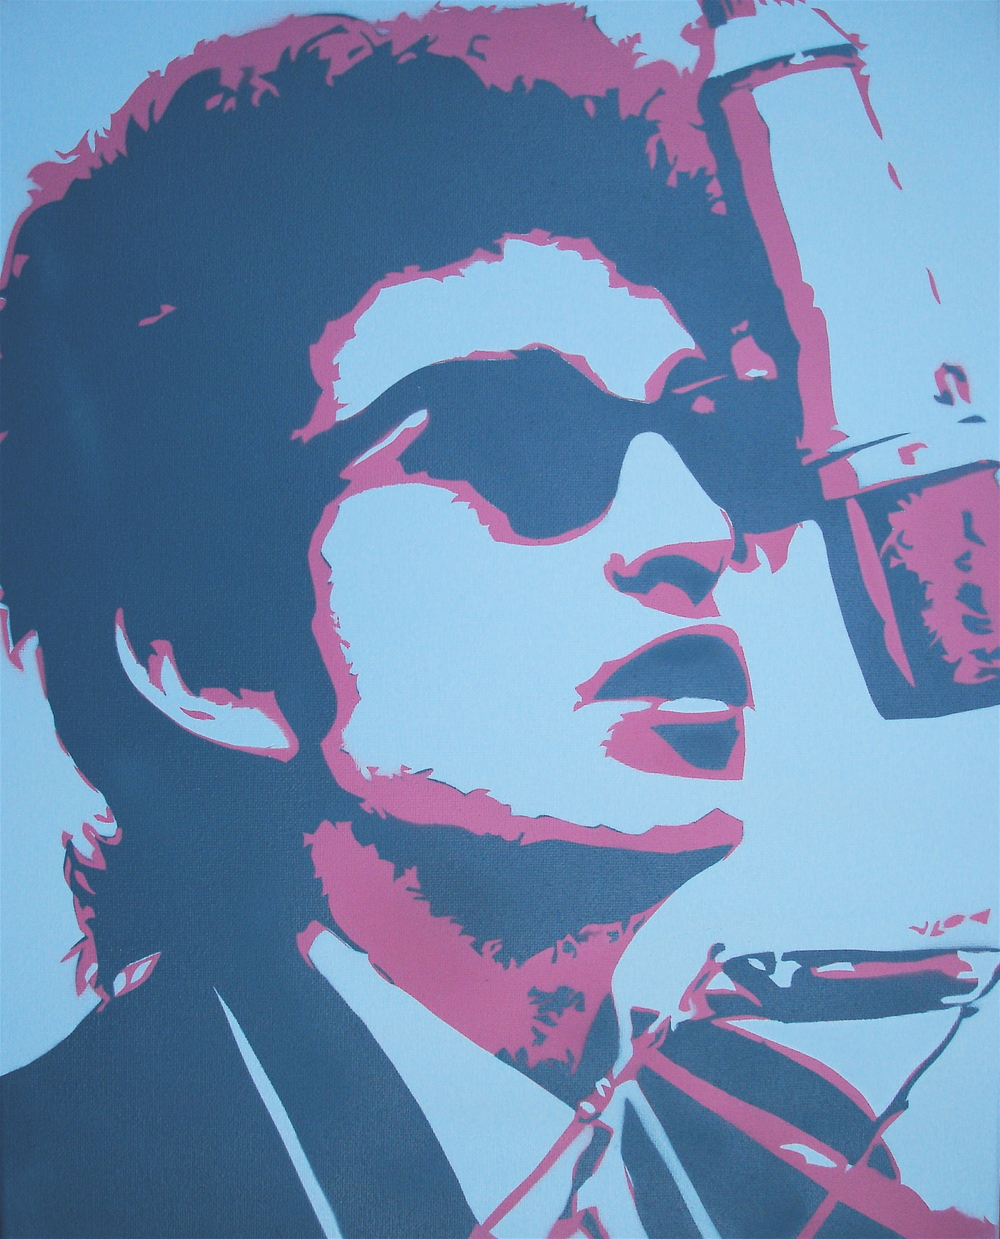 14. Who caused uproar at the Newport Folk Festival in 1965 by daring to play an electric guitar? Bob Dylan